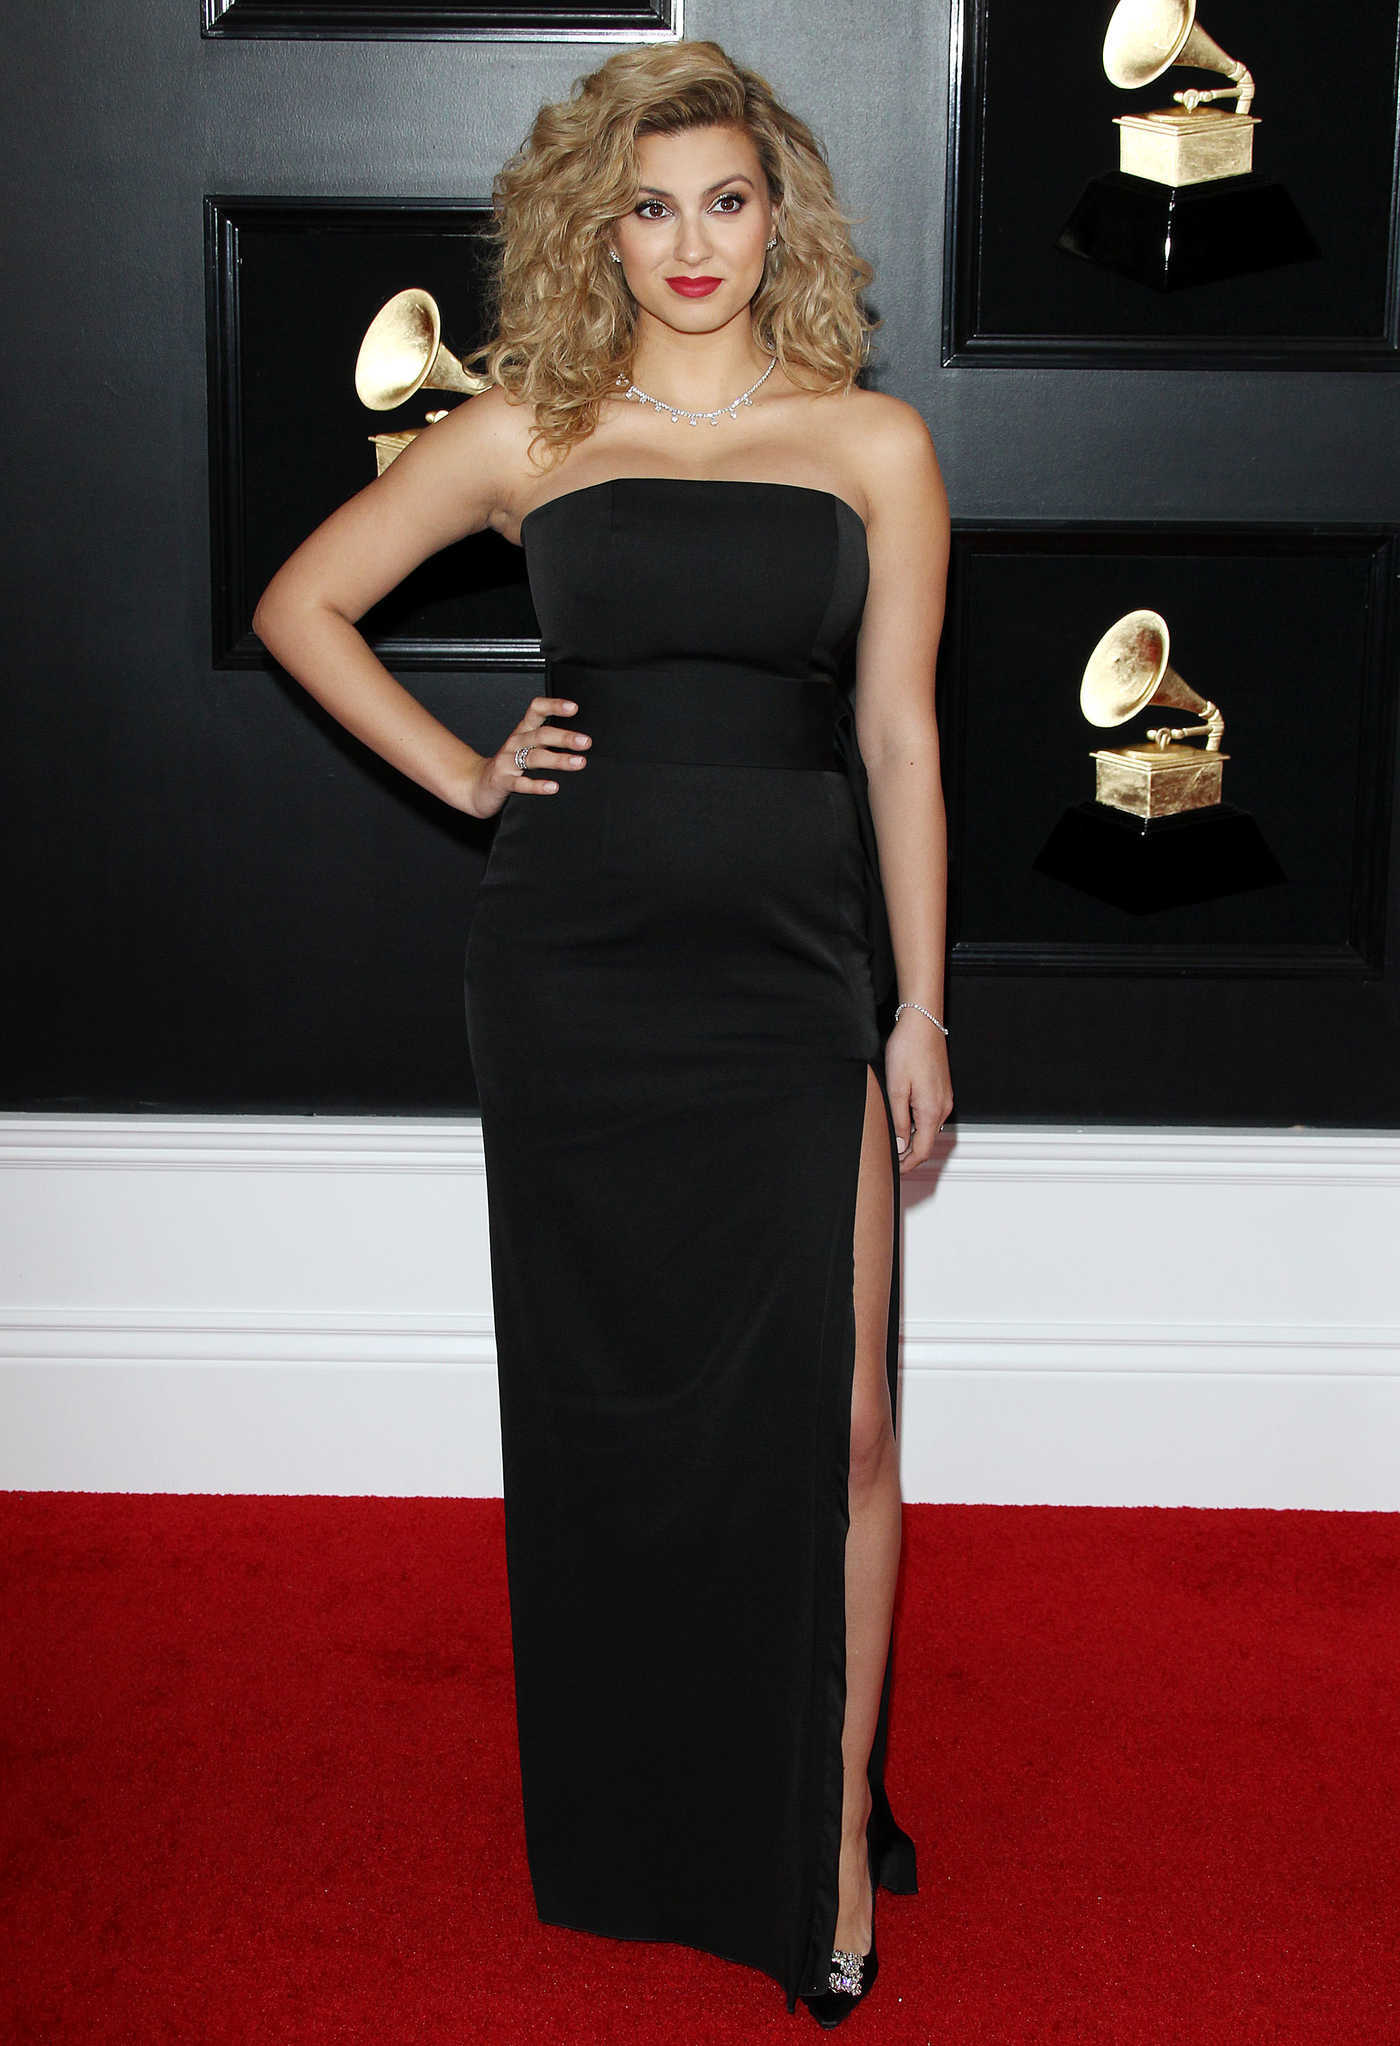 Tori Kelly Attends the 61st Annual Grammy Awards 2019 at the Staples Center in Los Angeles 02/10/2019